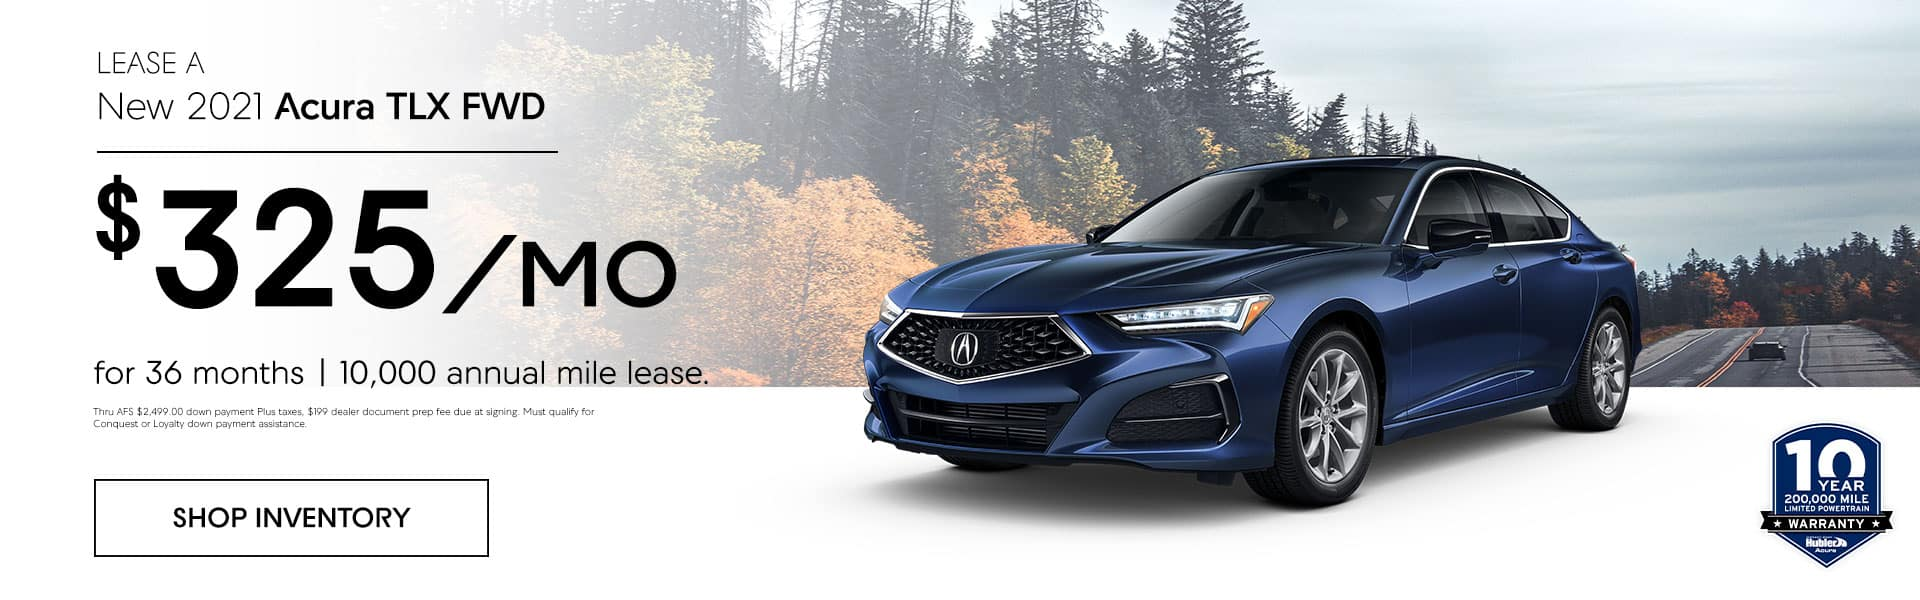 New 2021 Acura RDX FWD $ 408/month 36 month/10,000 annual mile lease